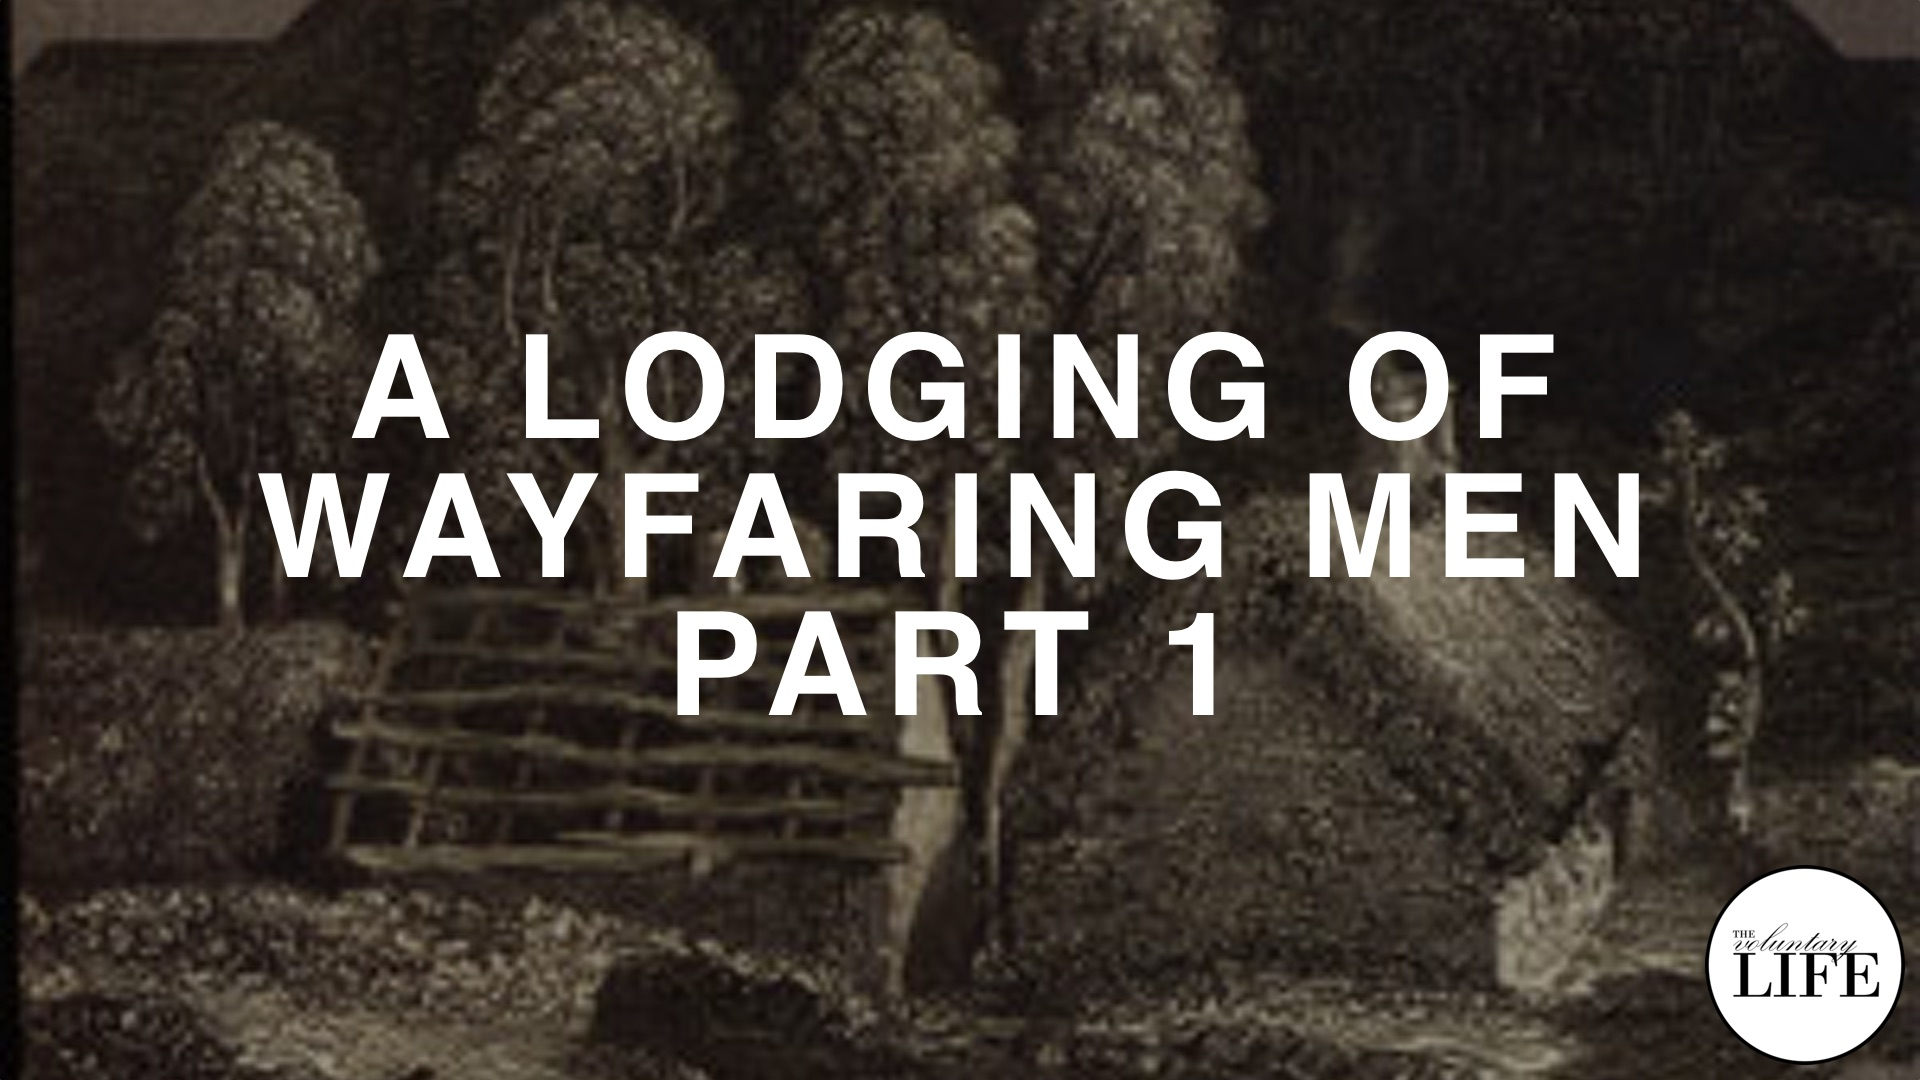 41 Author Interview: Paul Rosenberg on A Lodging of Wayfaring Men Part 1